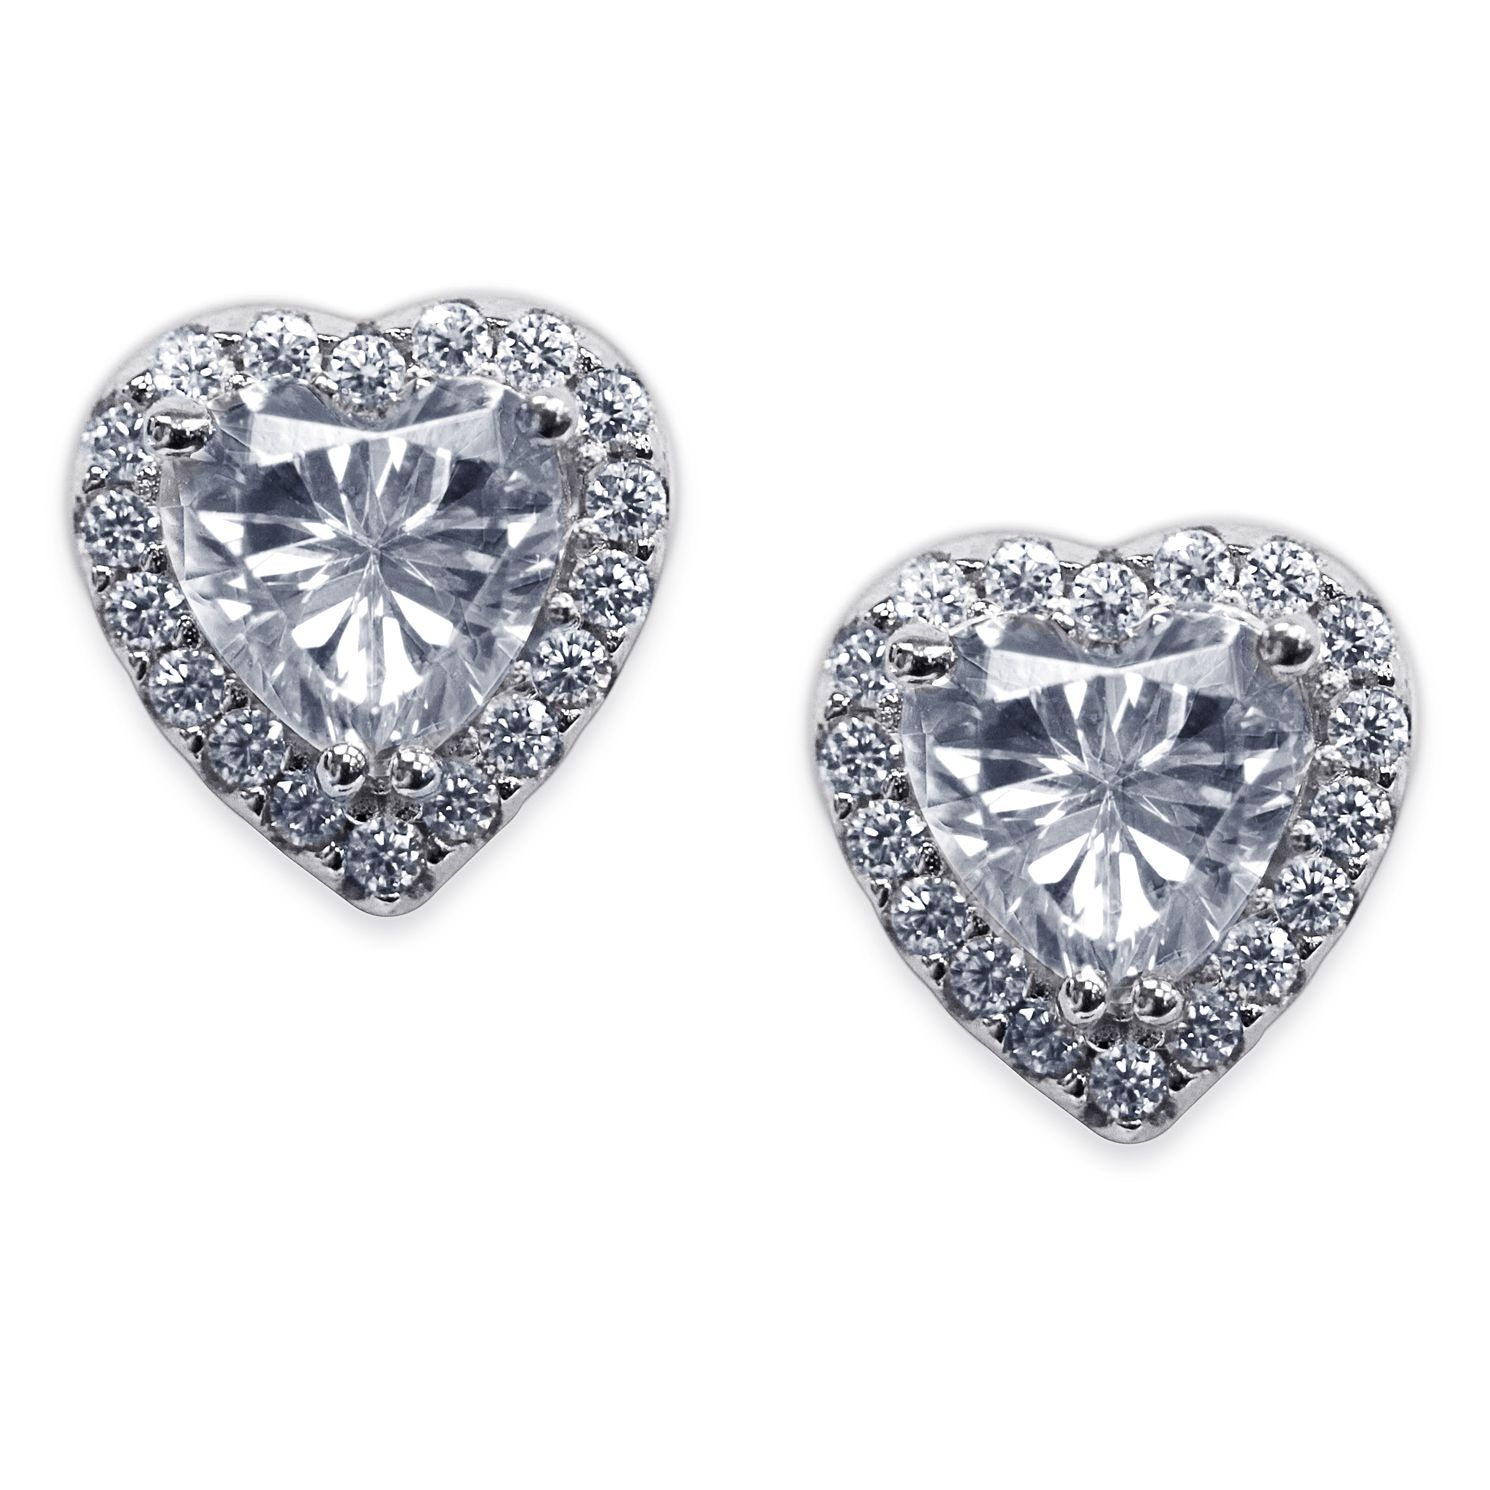 CARAT* LONDON Cora Sterling Silver Heart Studs - Product number 6957587